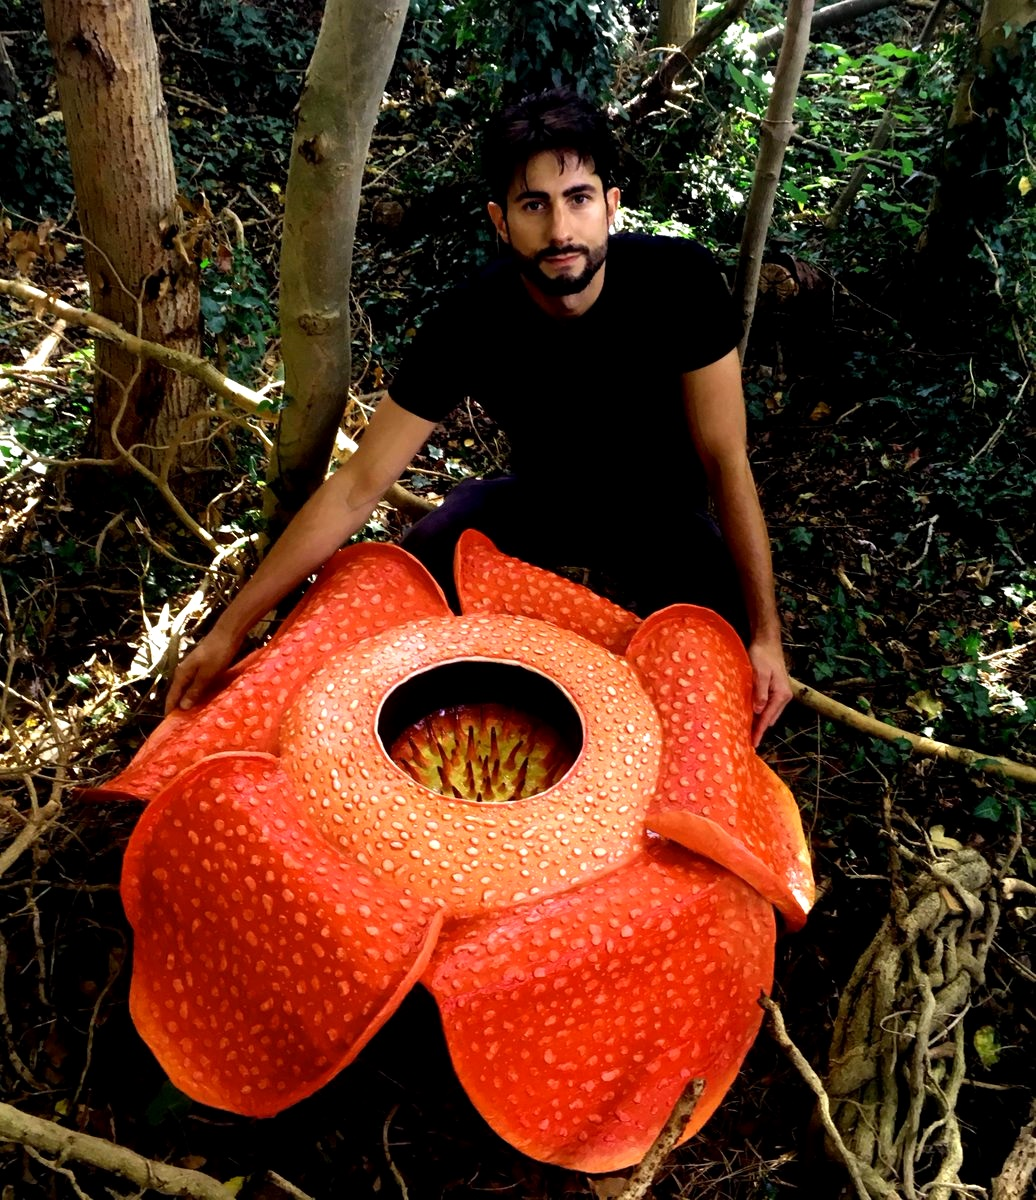 Rafflesia - the largest flower on earth